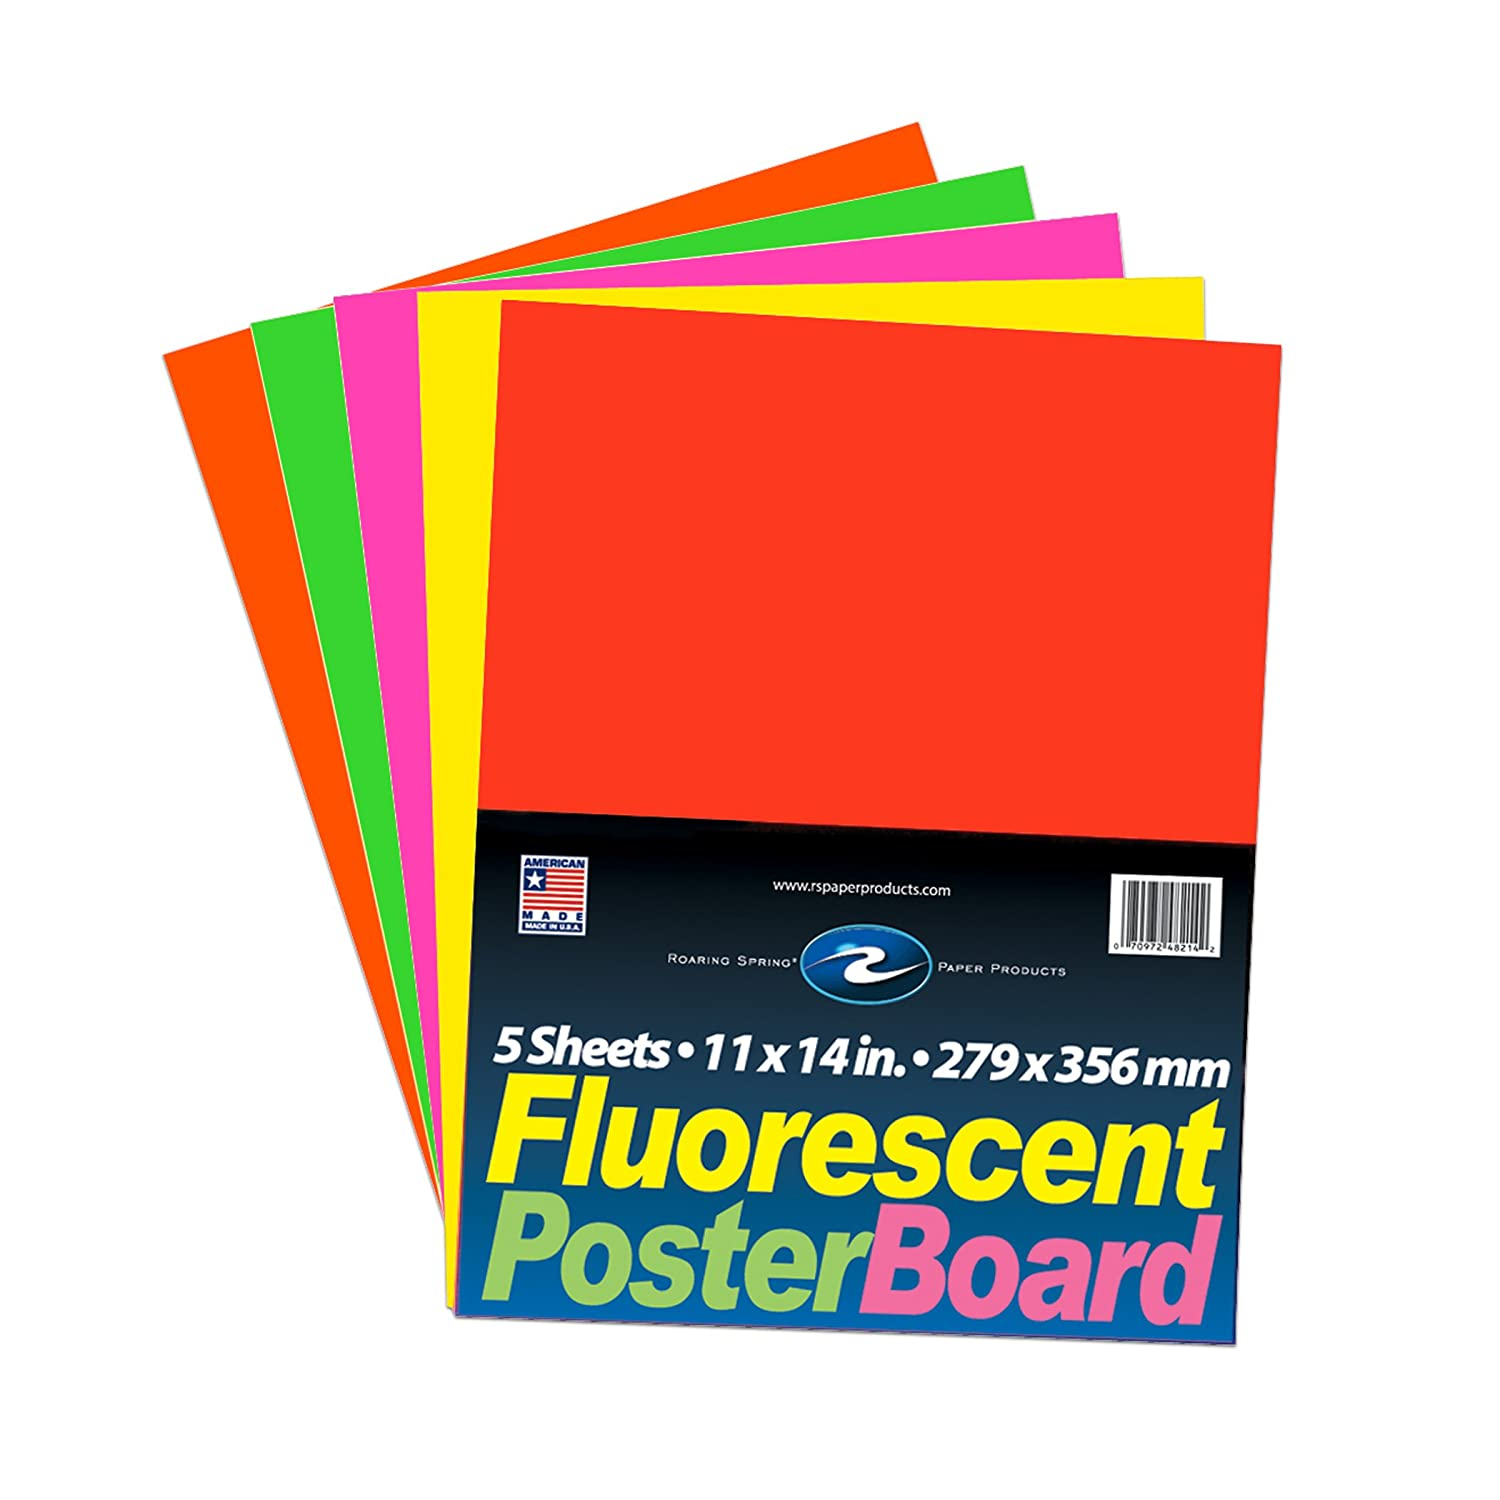 11 x 14 5 sheets per pack Roaring Spring Fluorescent Poster Board